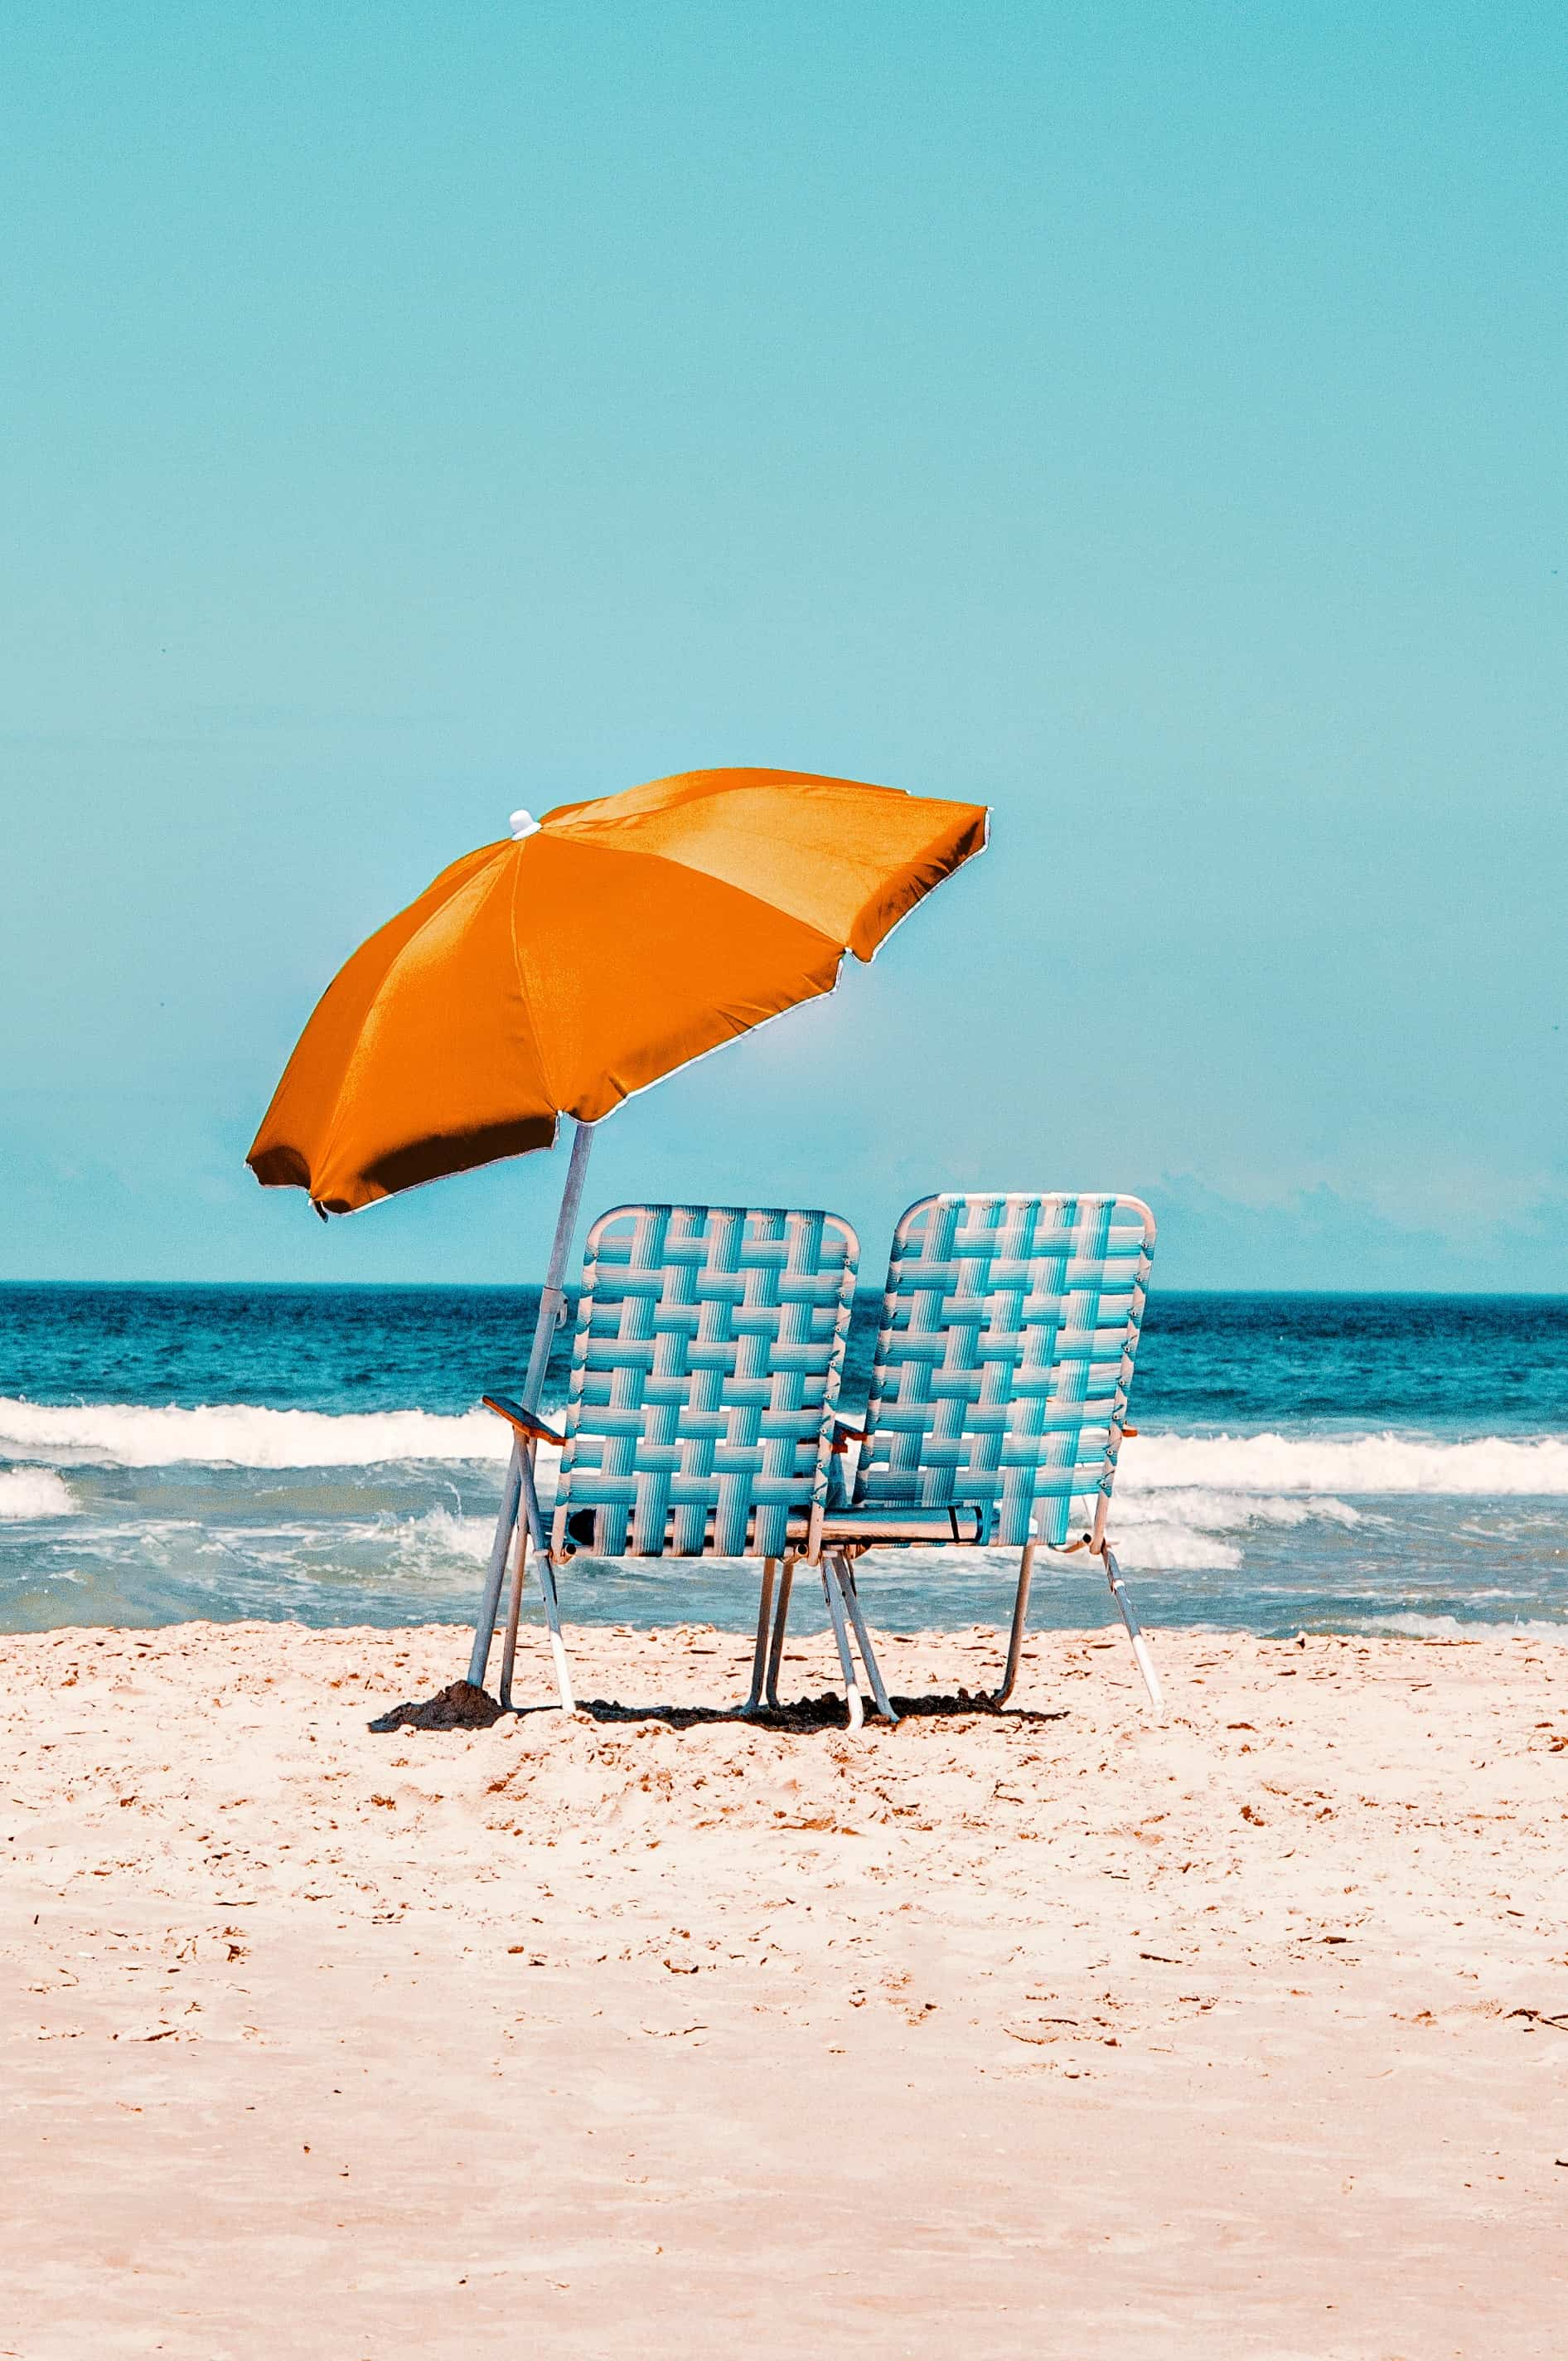 Orange parasol on beach with blue beach chairs